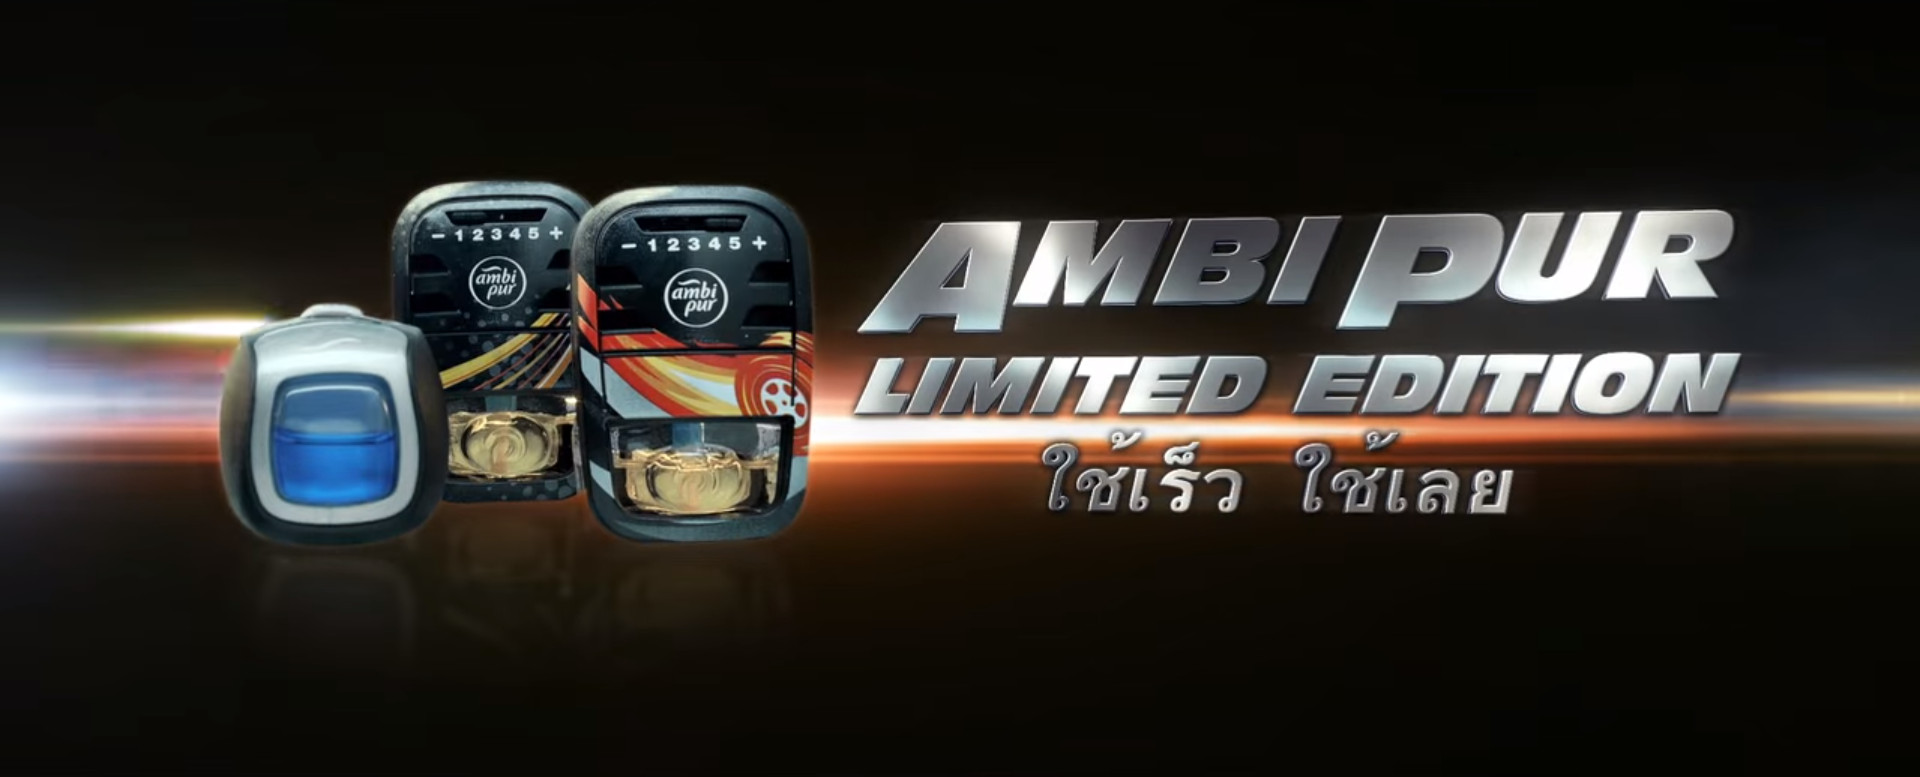 Fast & Furious - Limited Edition Ambi Pur Car